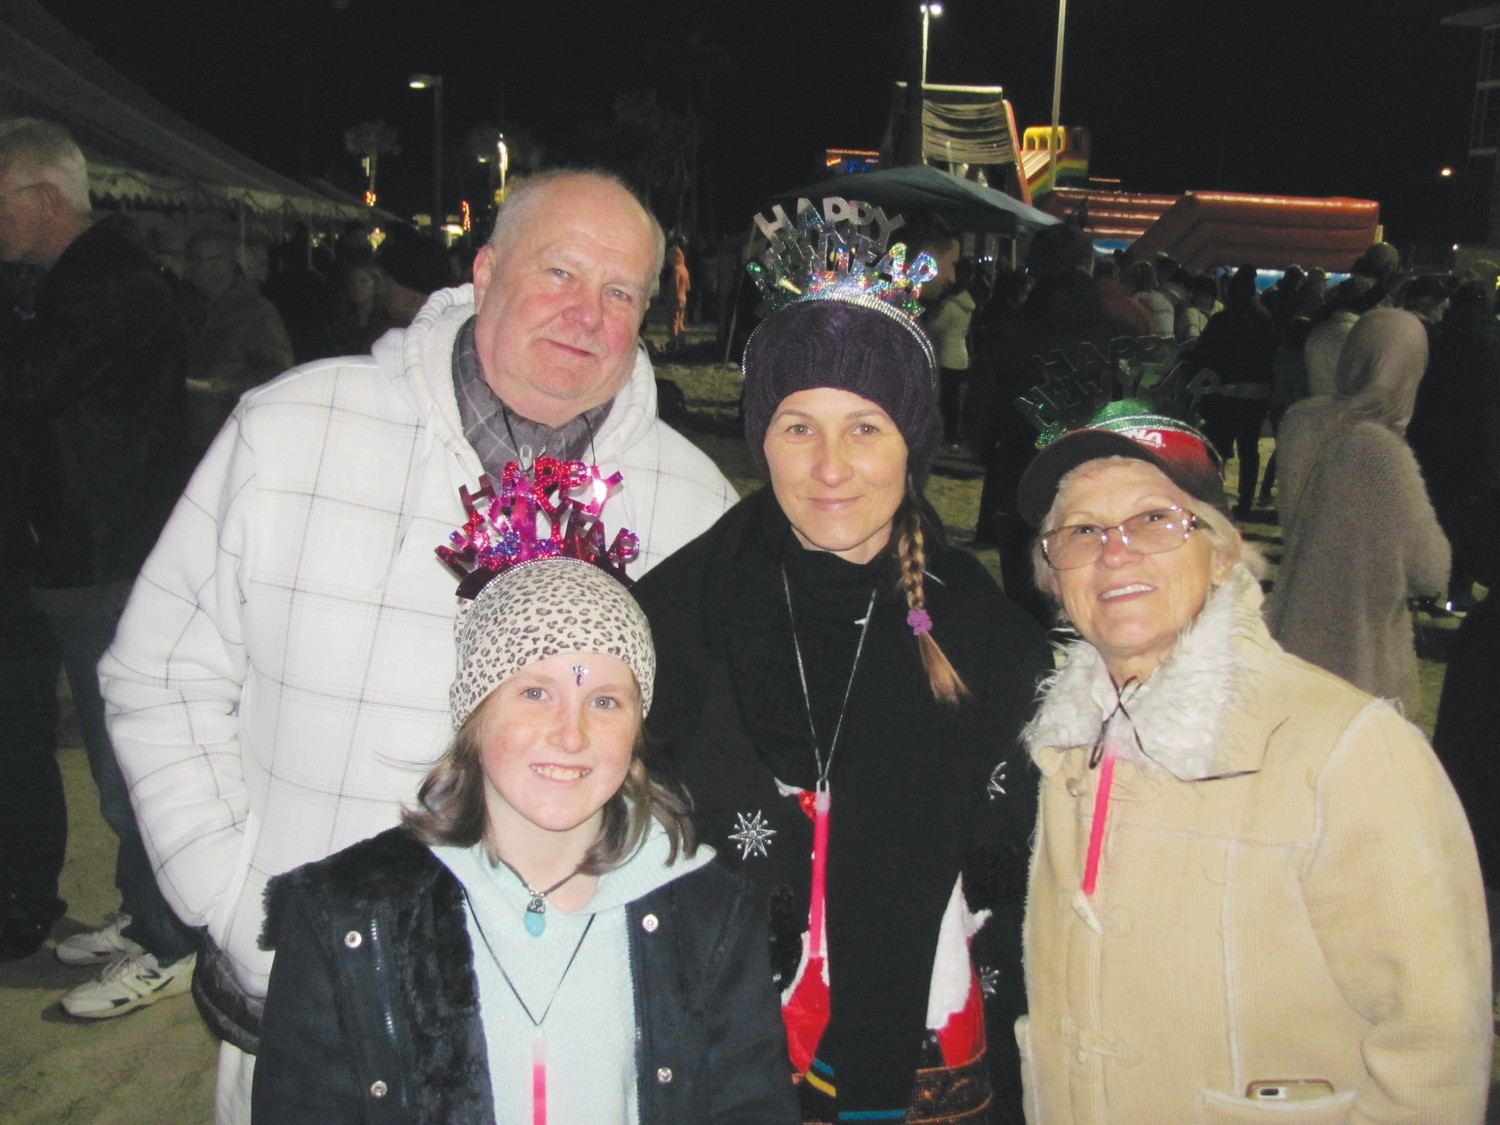 Ahila, Abigail, Auguszta and Erzsebet Tasi visit St. Augustine from Australia to celebrate the new year and enjoy the festivities at the Beach Blast Off event.